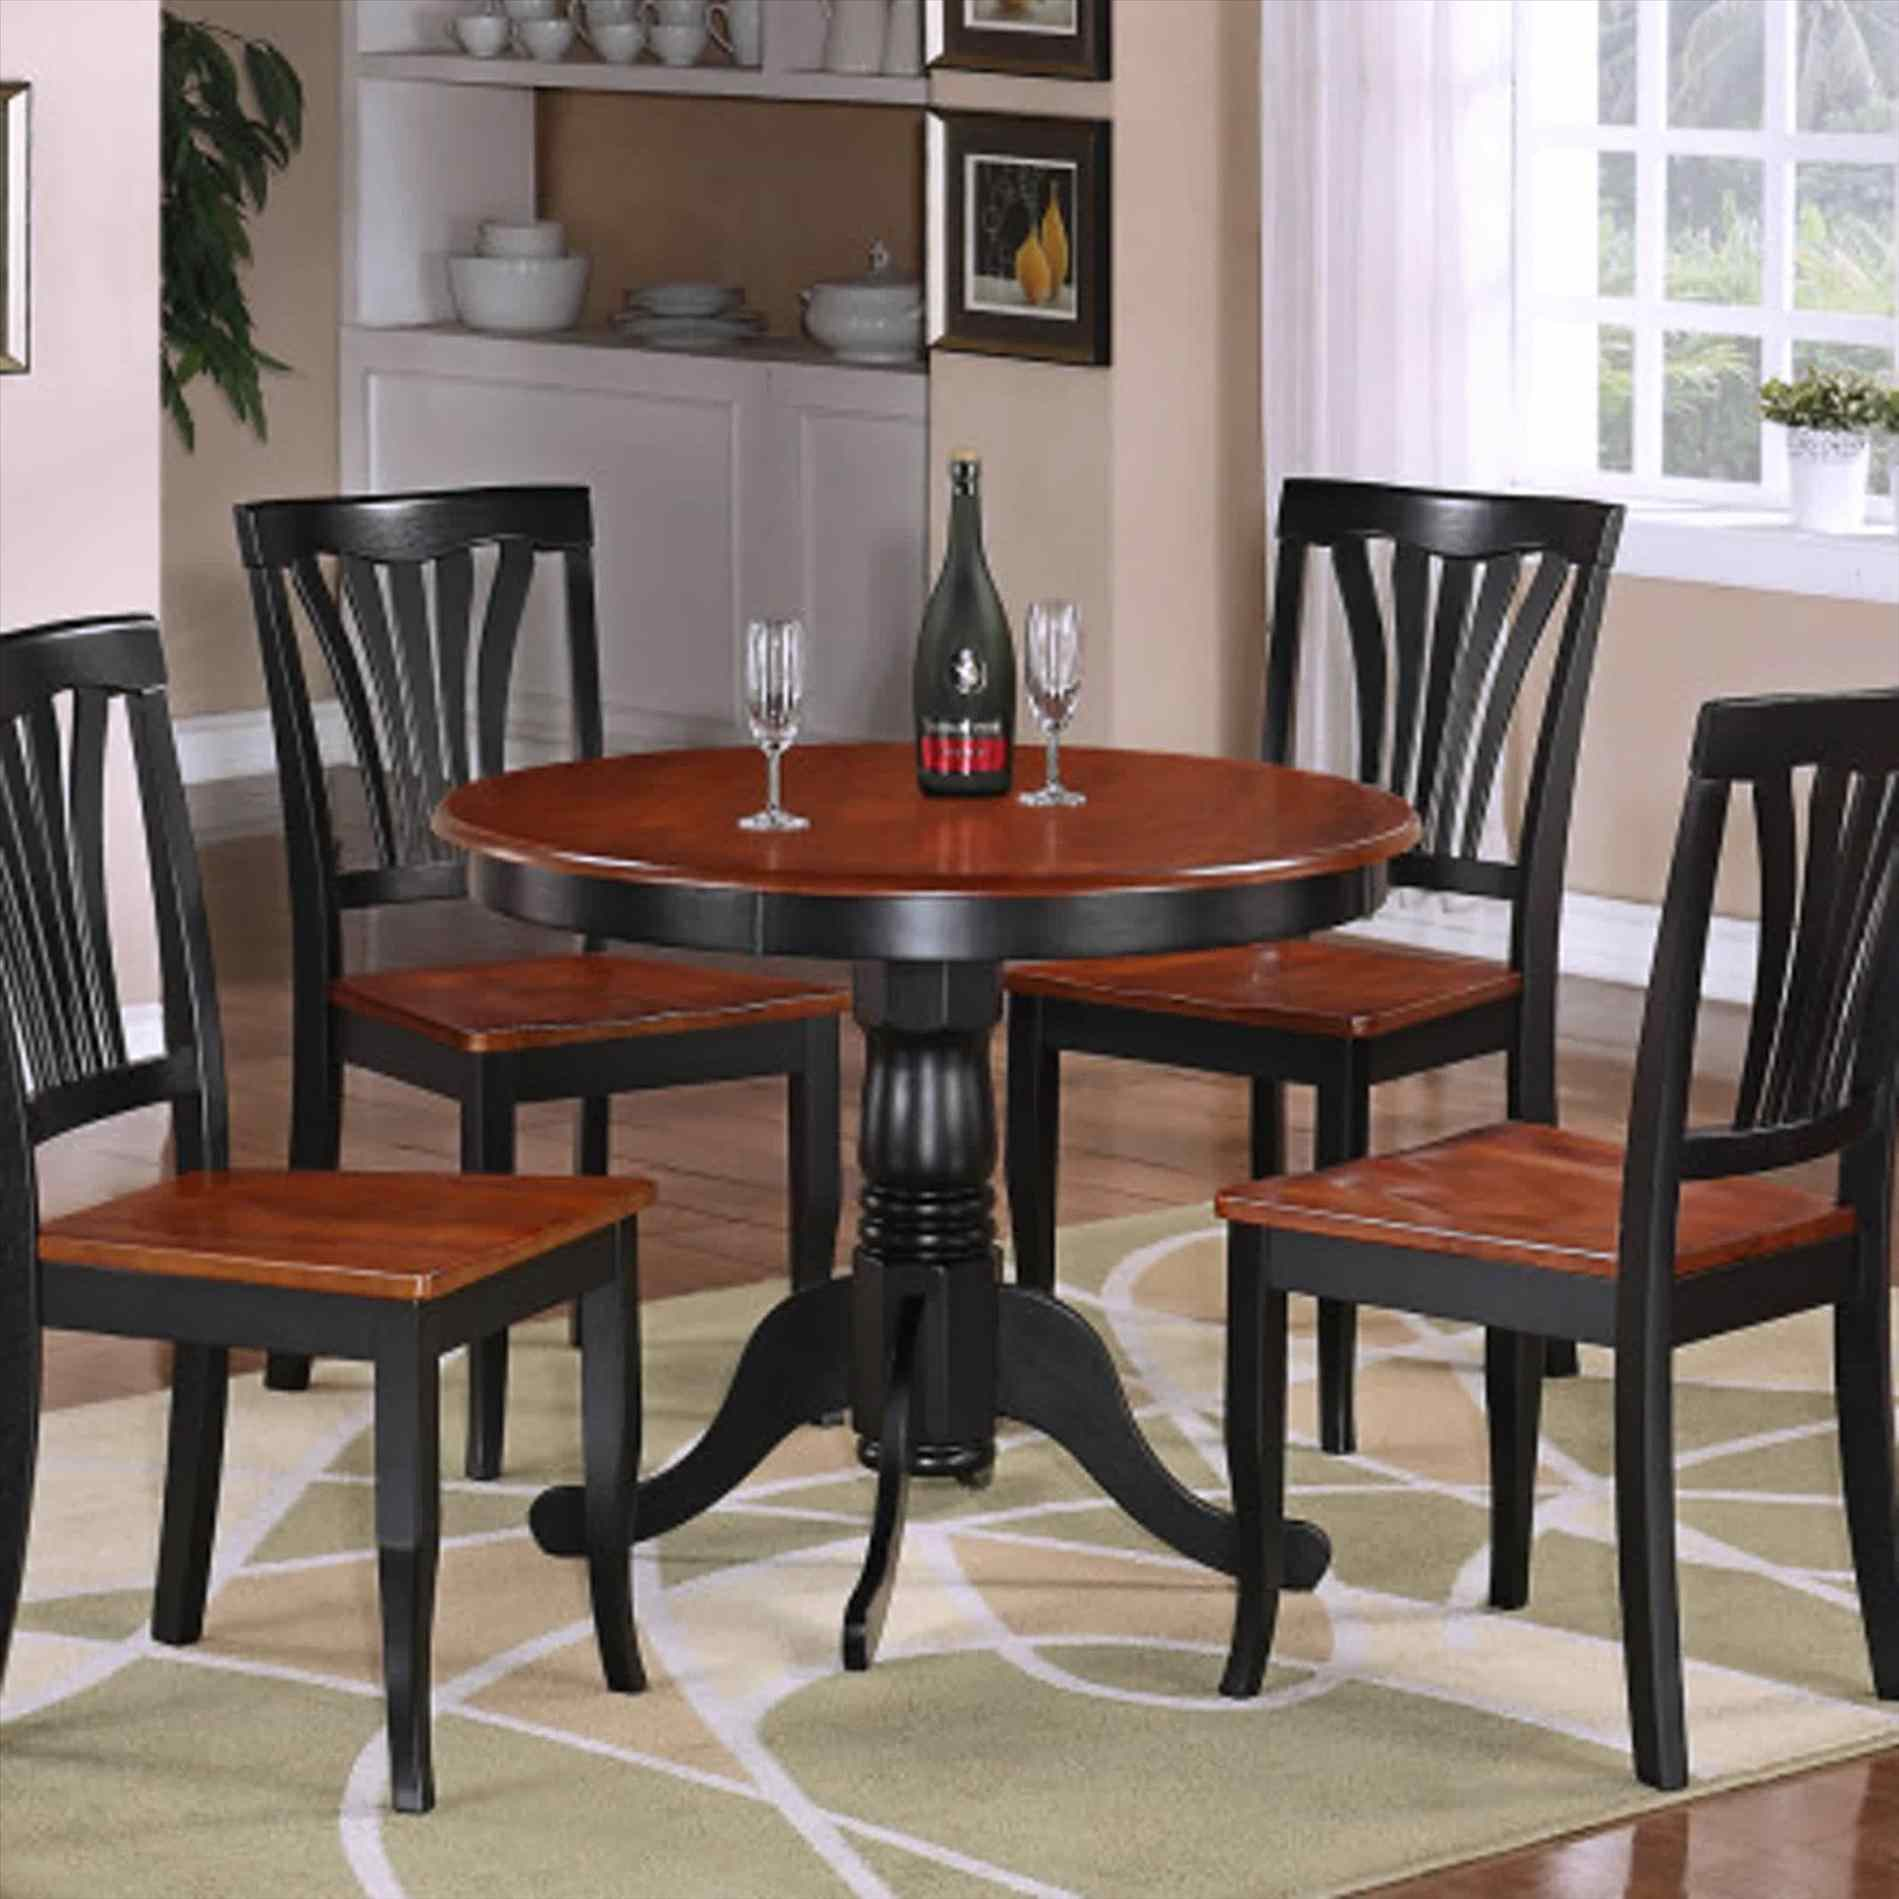 Small Circle Dining Room Table photo - 7